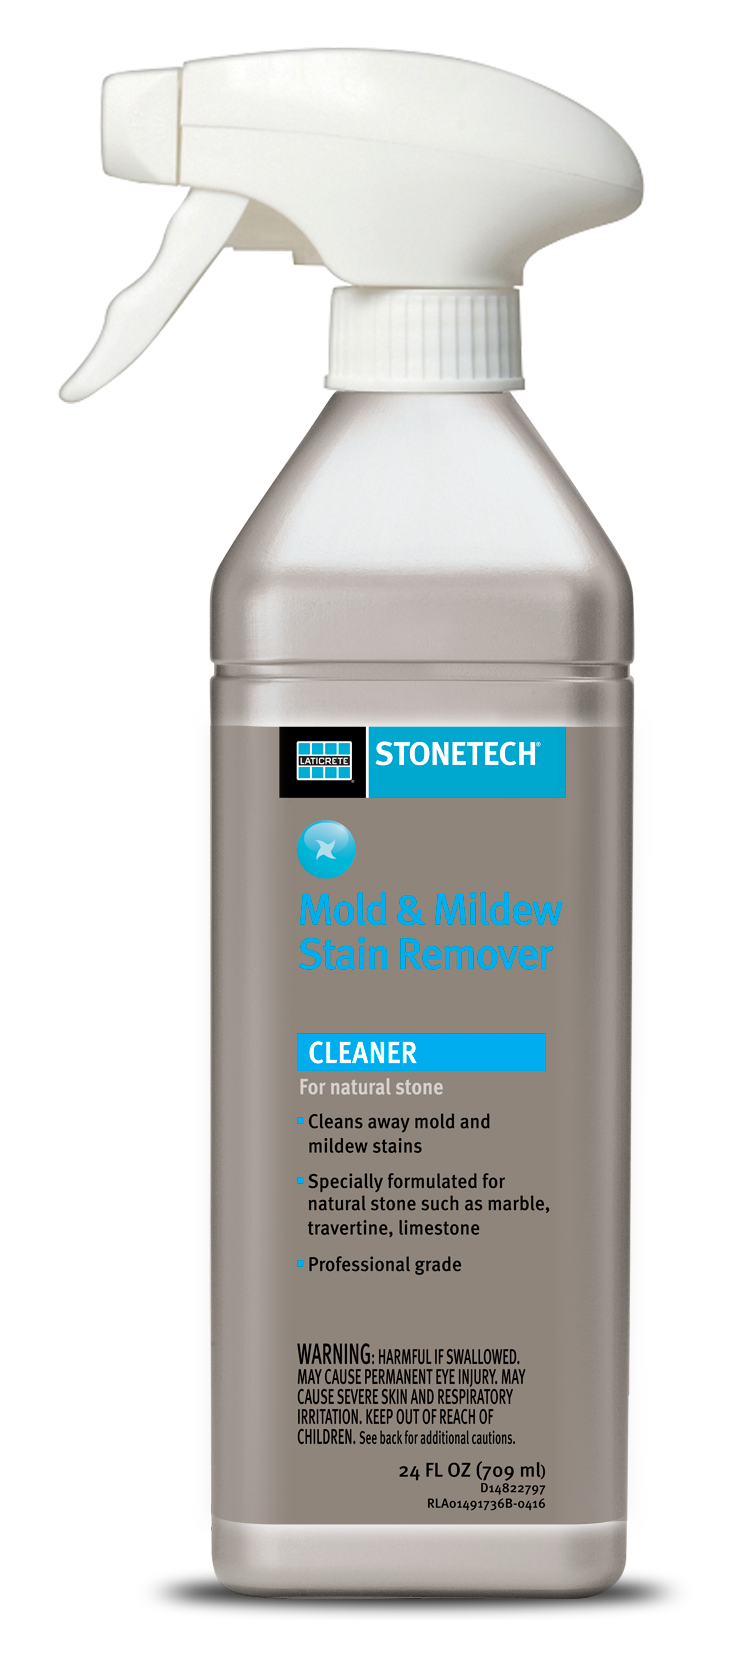 STONETECH® Mold & Mildew Stain Remover